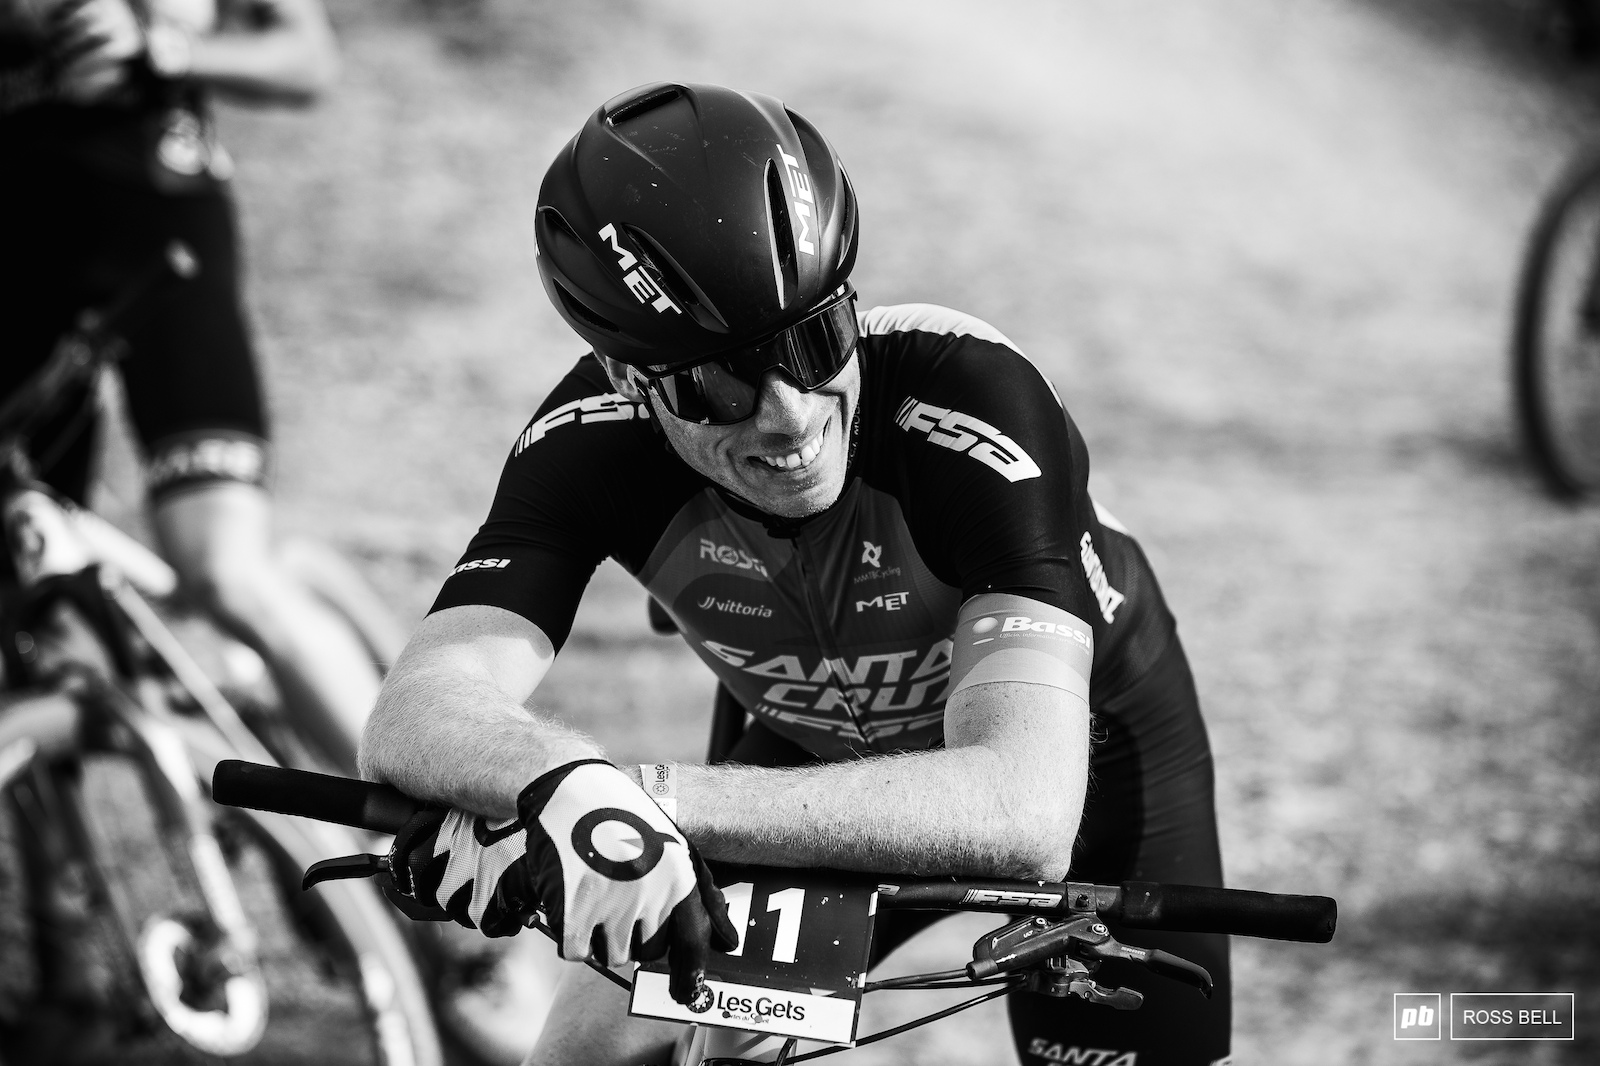 Maxime Marotte smiling through the pain after finishing 8th.